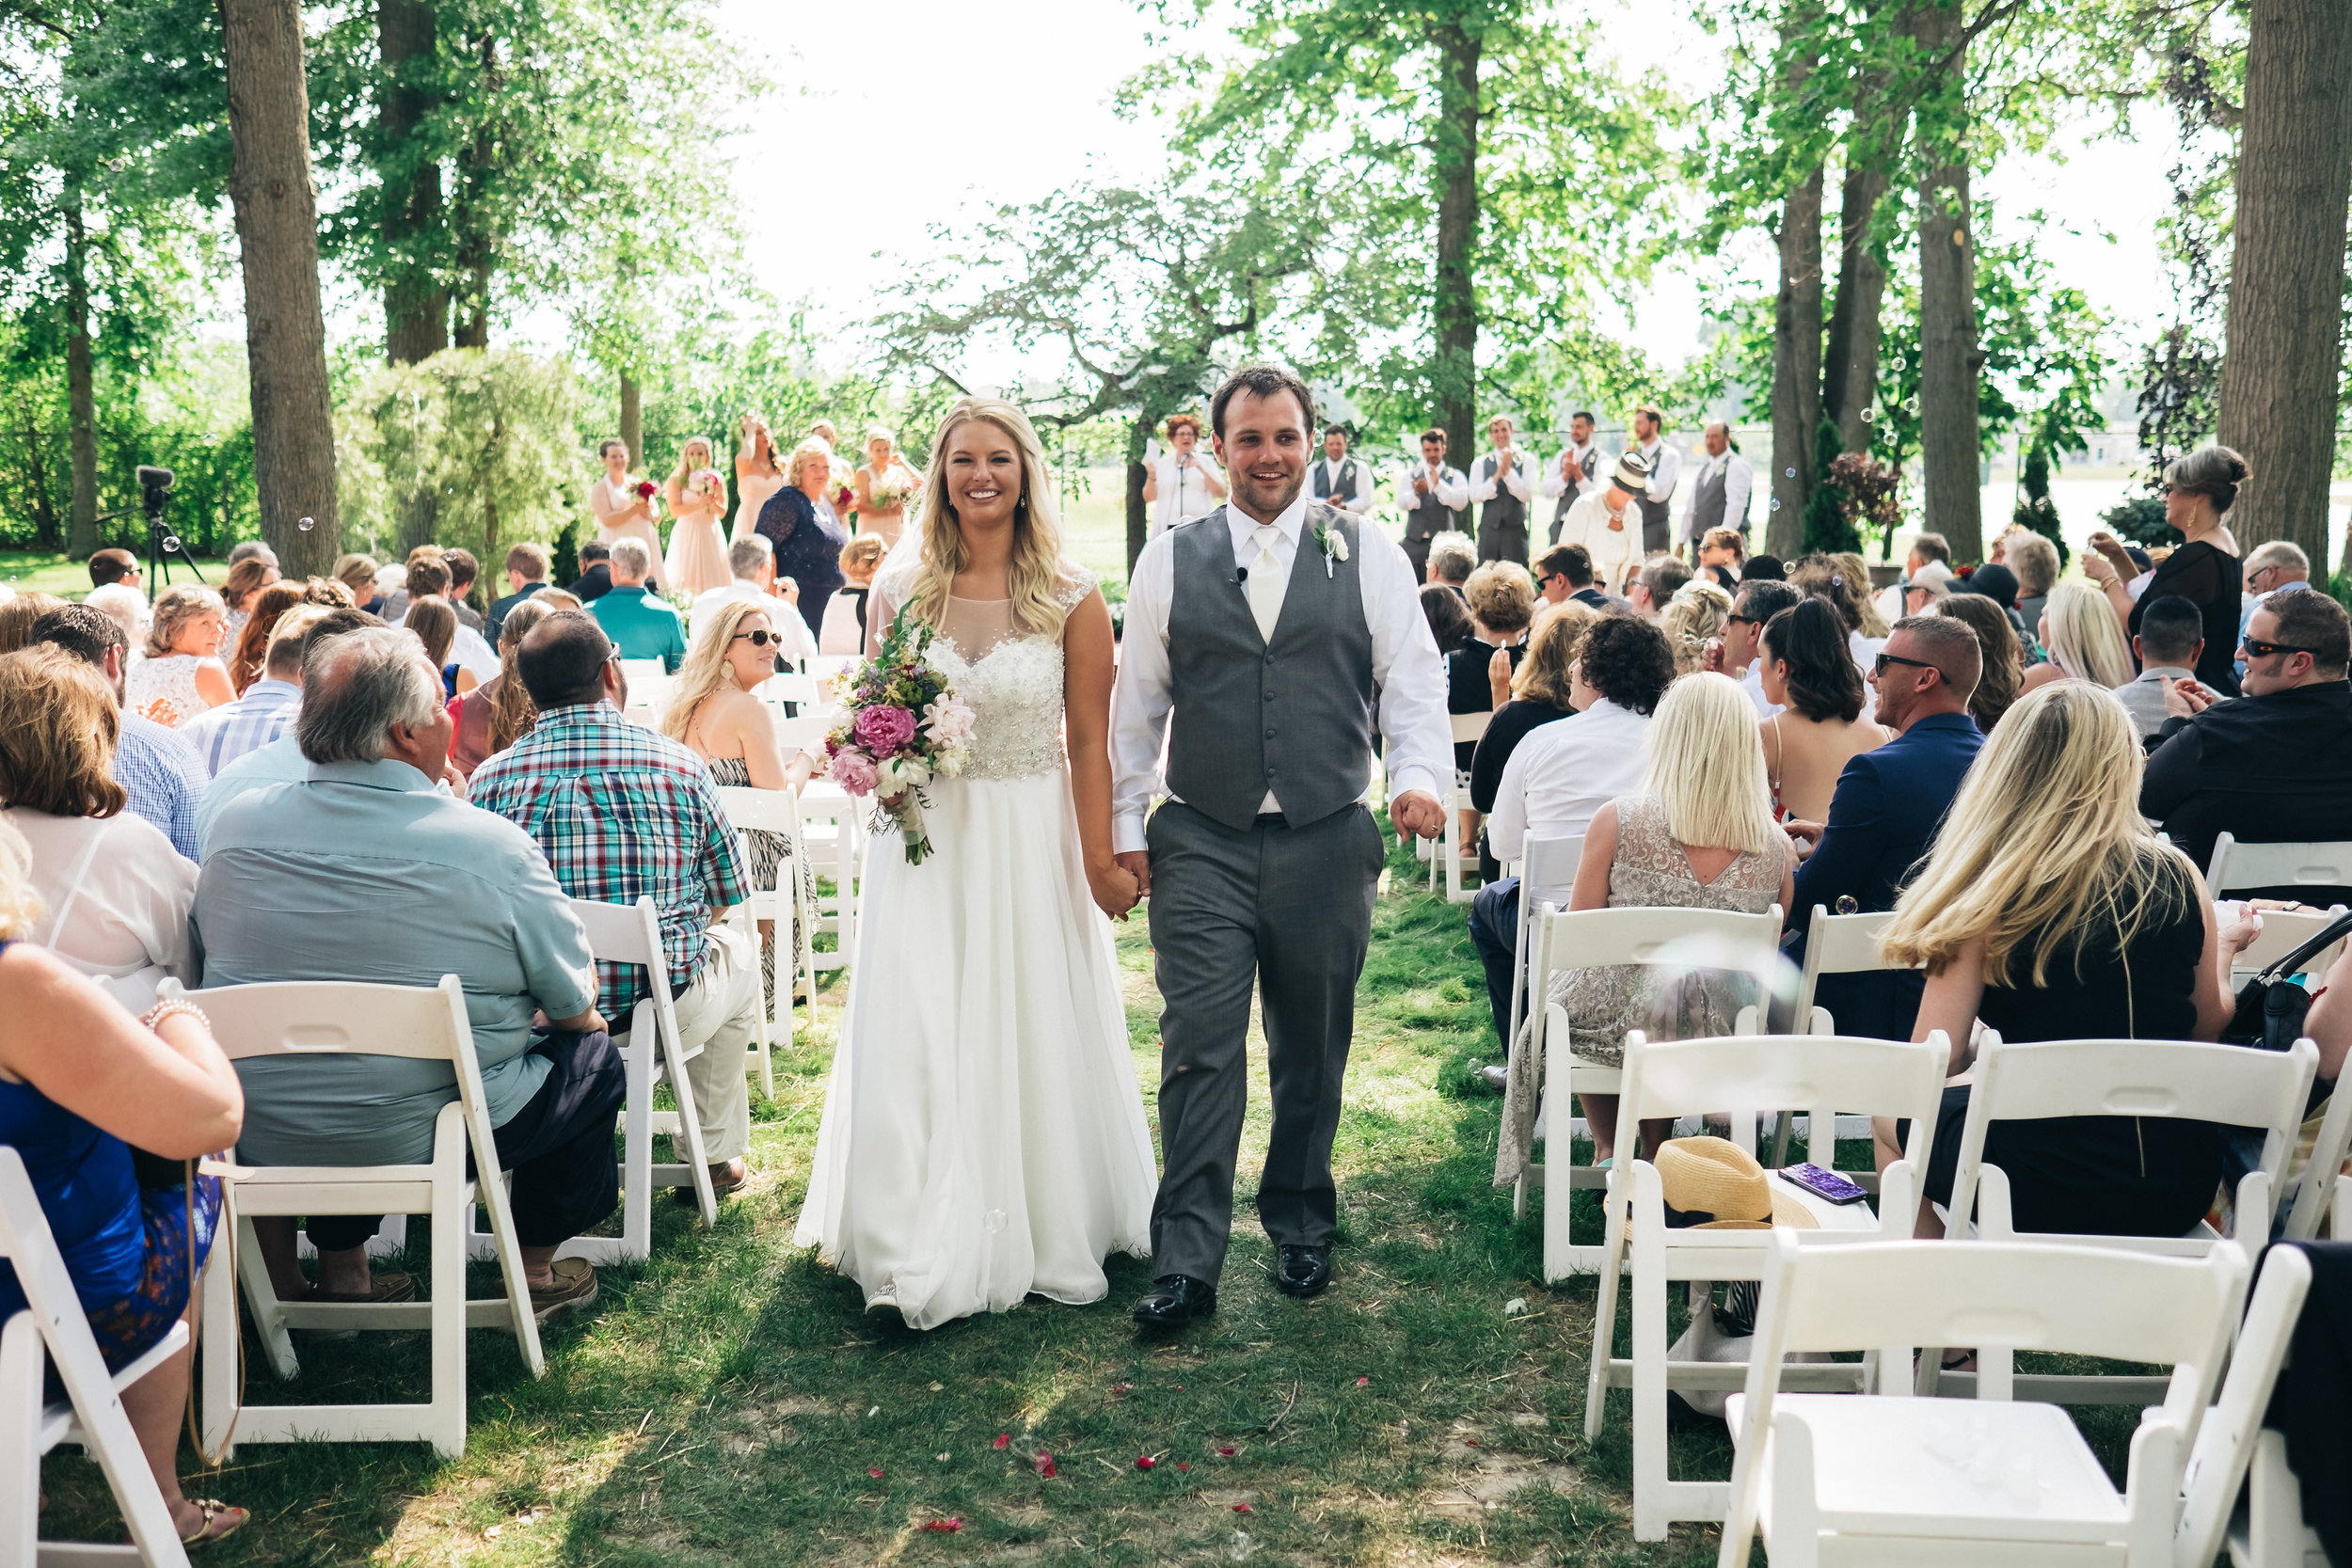 Danielle and Jake out in a garden wedding ceremony.